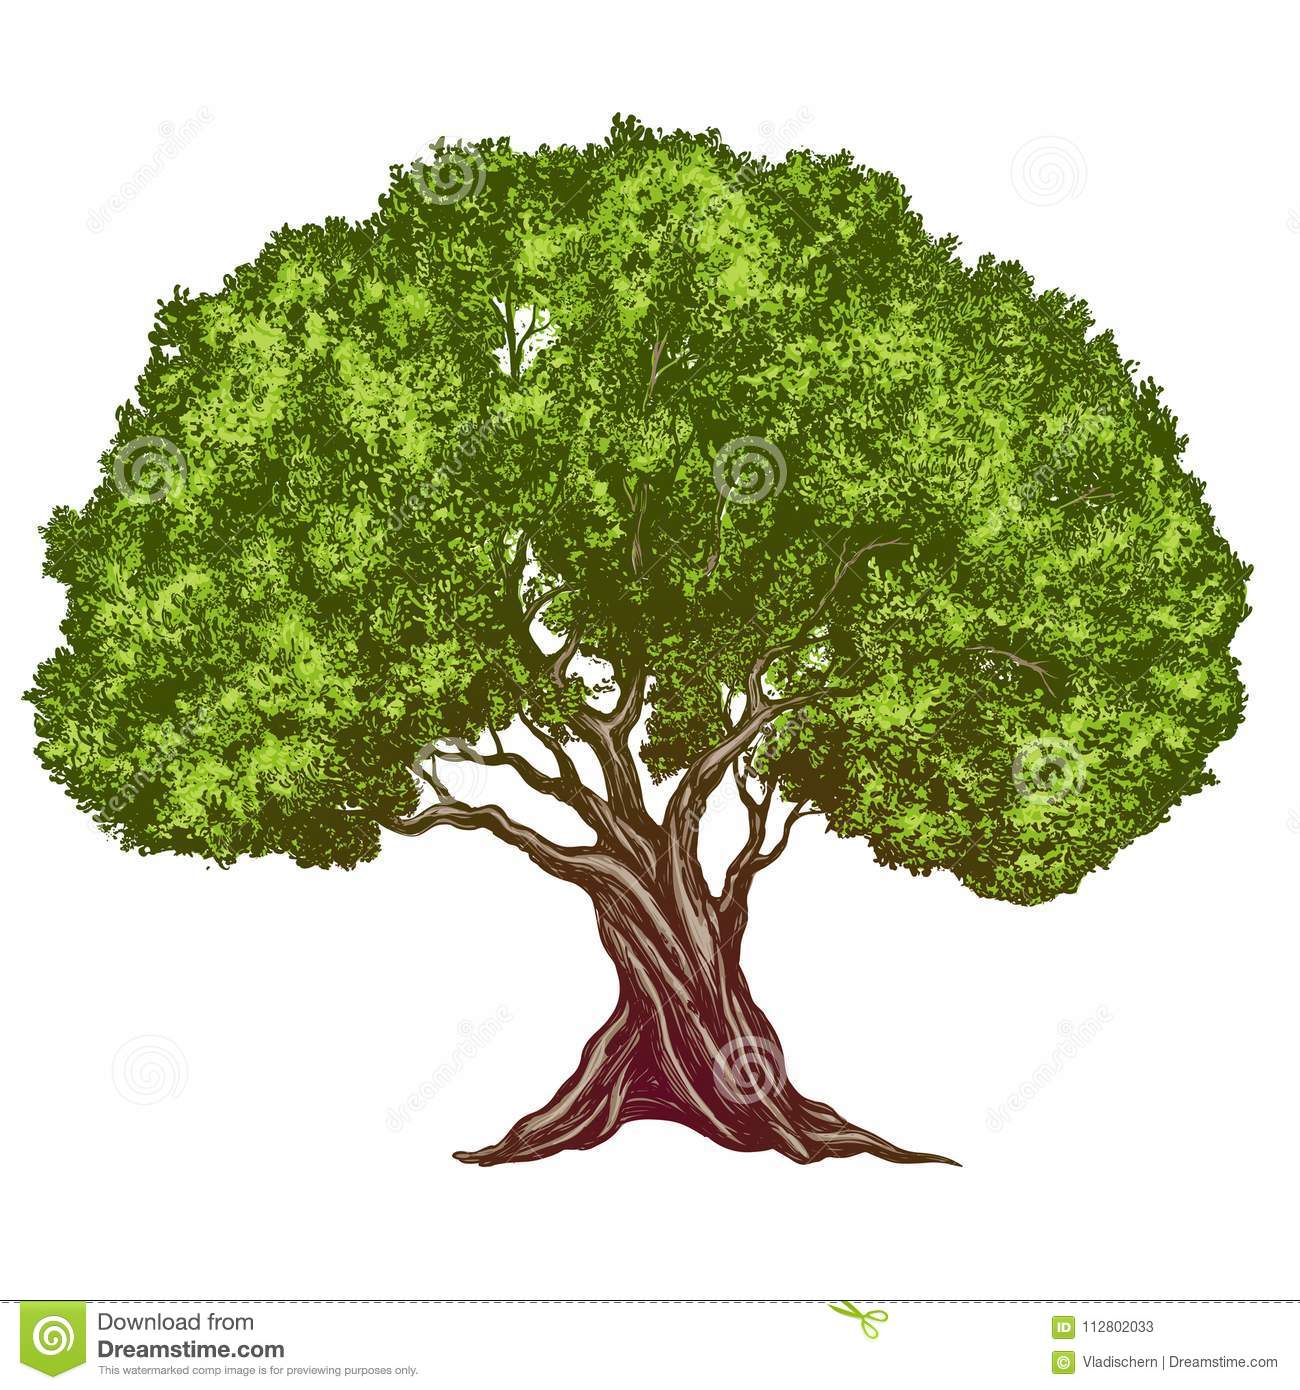 Free Images Realistic Tree Colored | colorimage.website